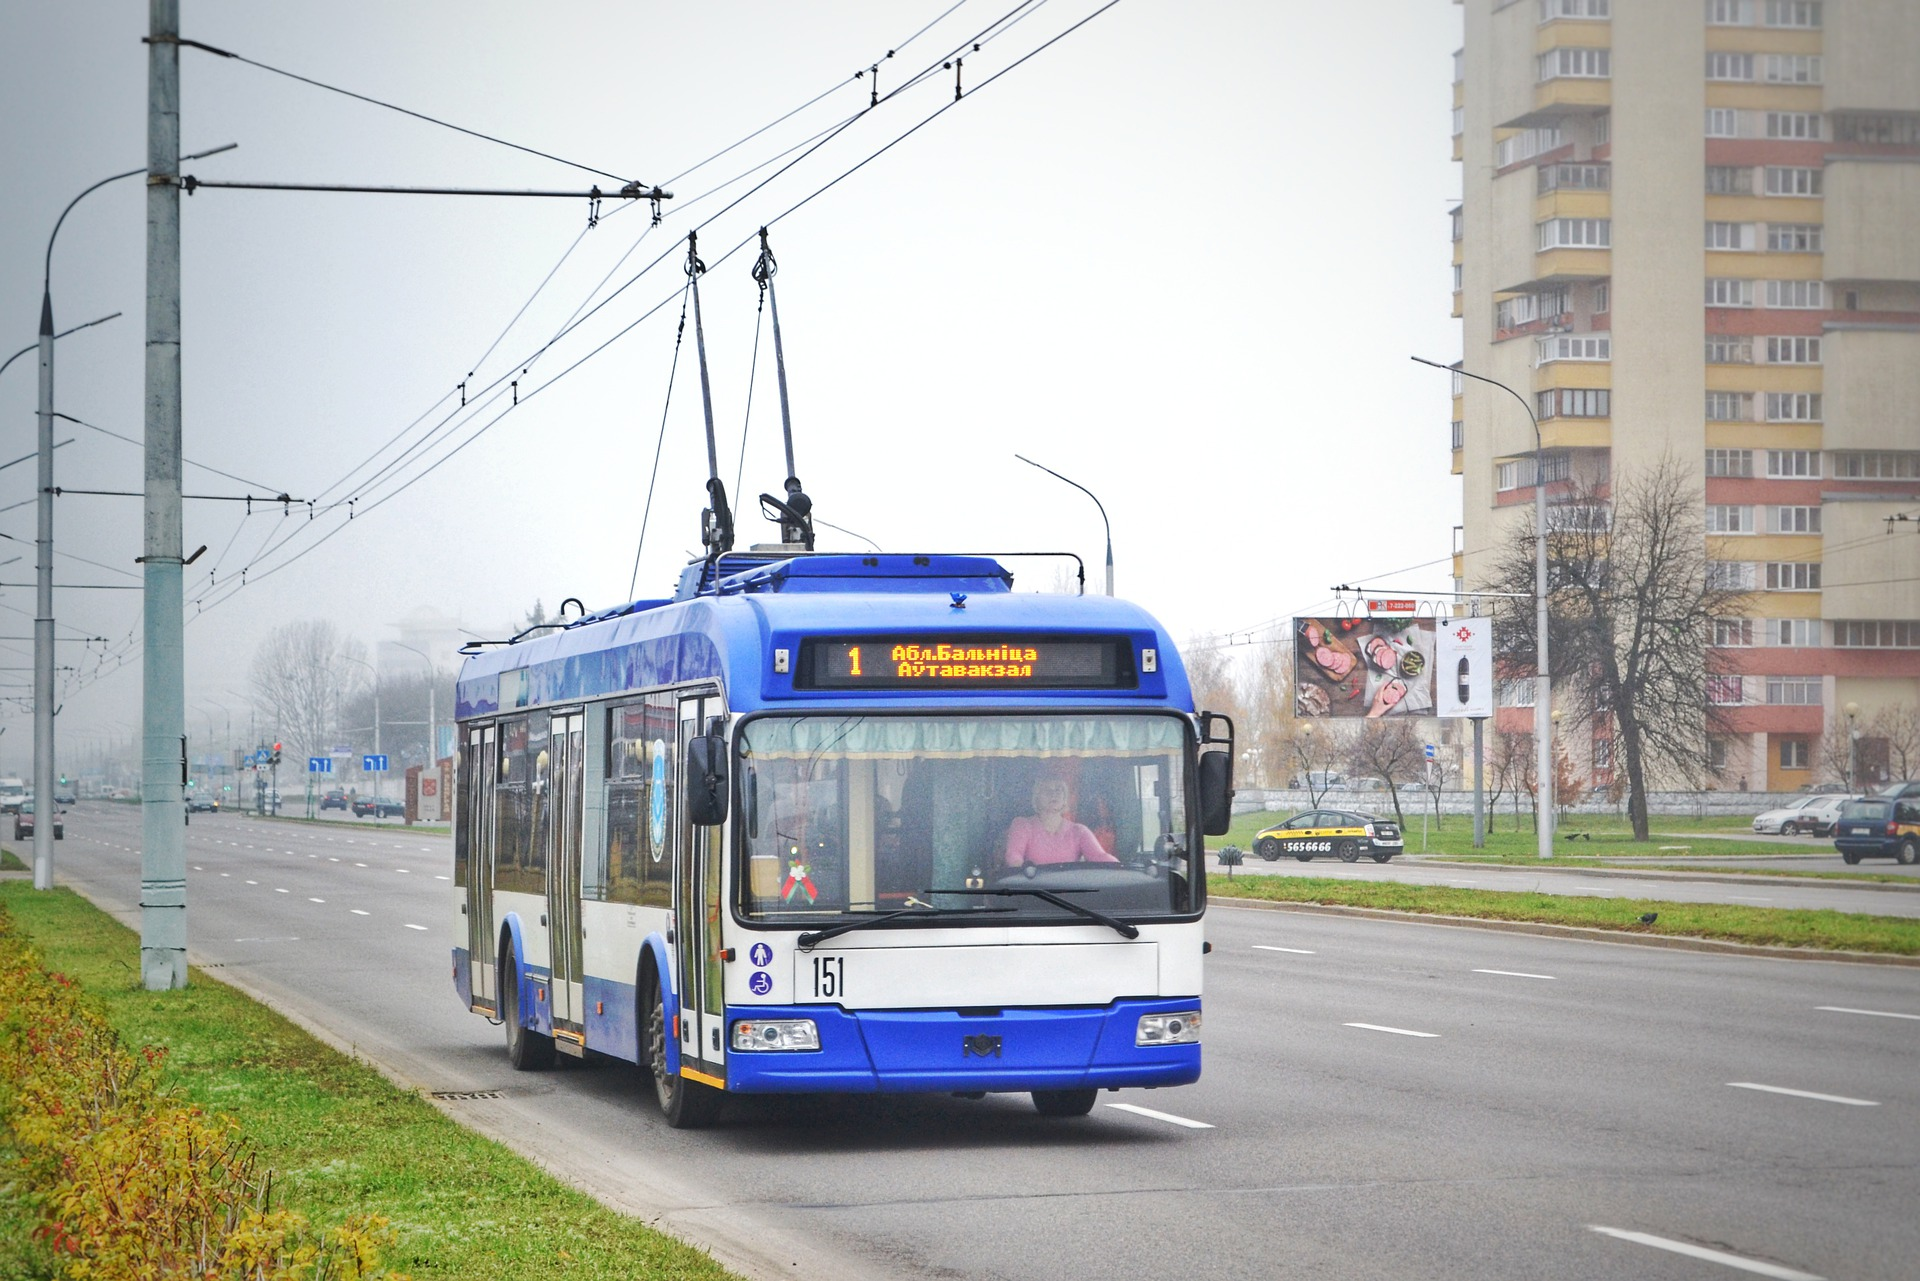 Denmark, Luxembourg, Netherlands lead deployments of zero-emission buses in Europe